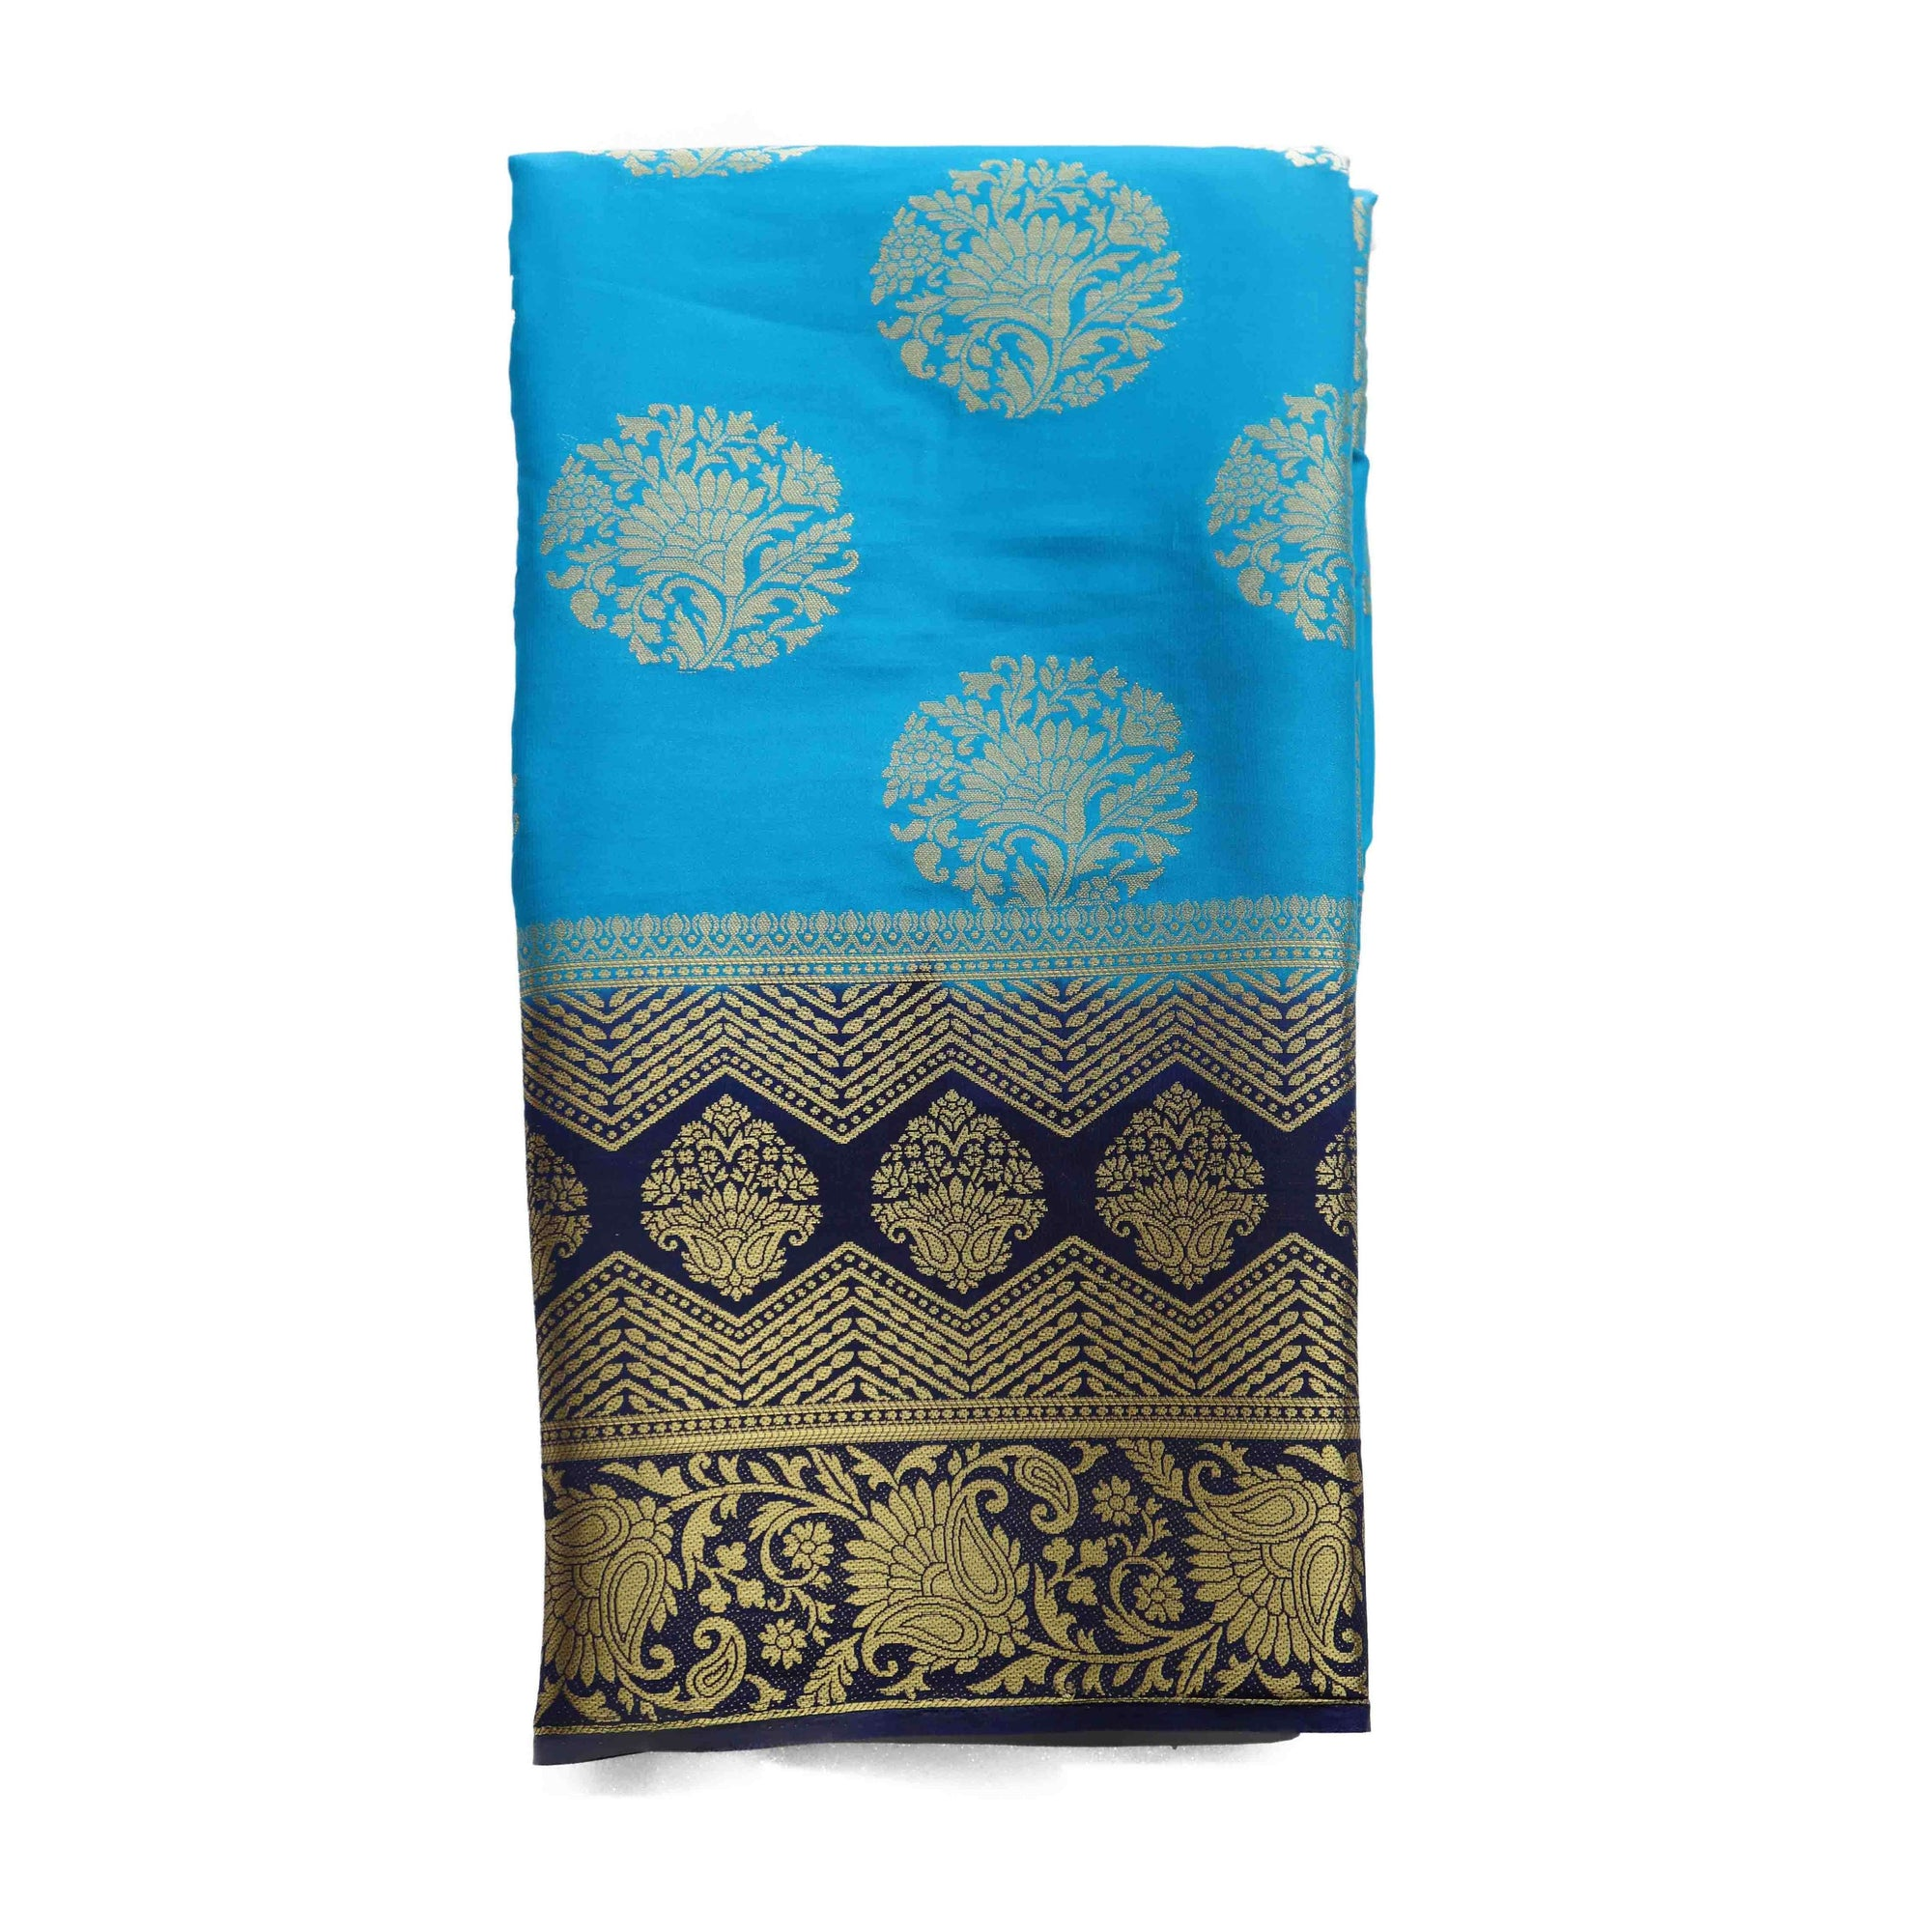 arars art crepe silk saree with blouse kanjivaram pattu style wedding collection colour blue (274)